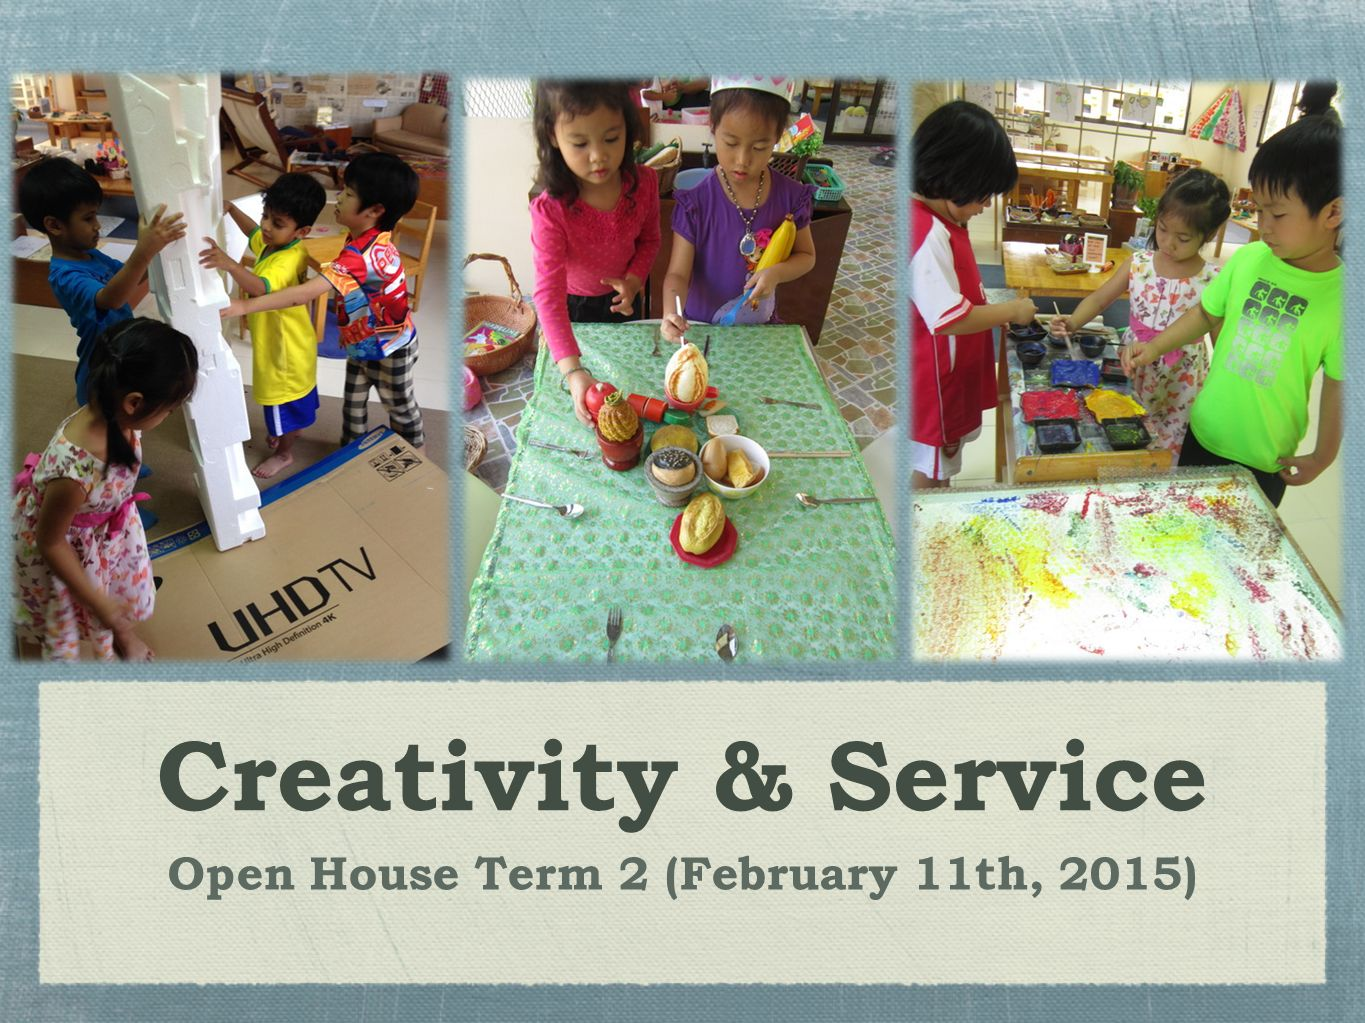 Creativity & Service Open House Term 2 (February 11th, 2015)